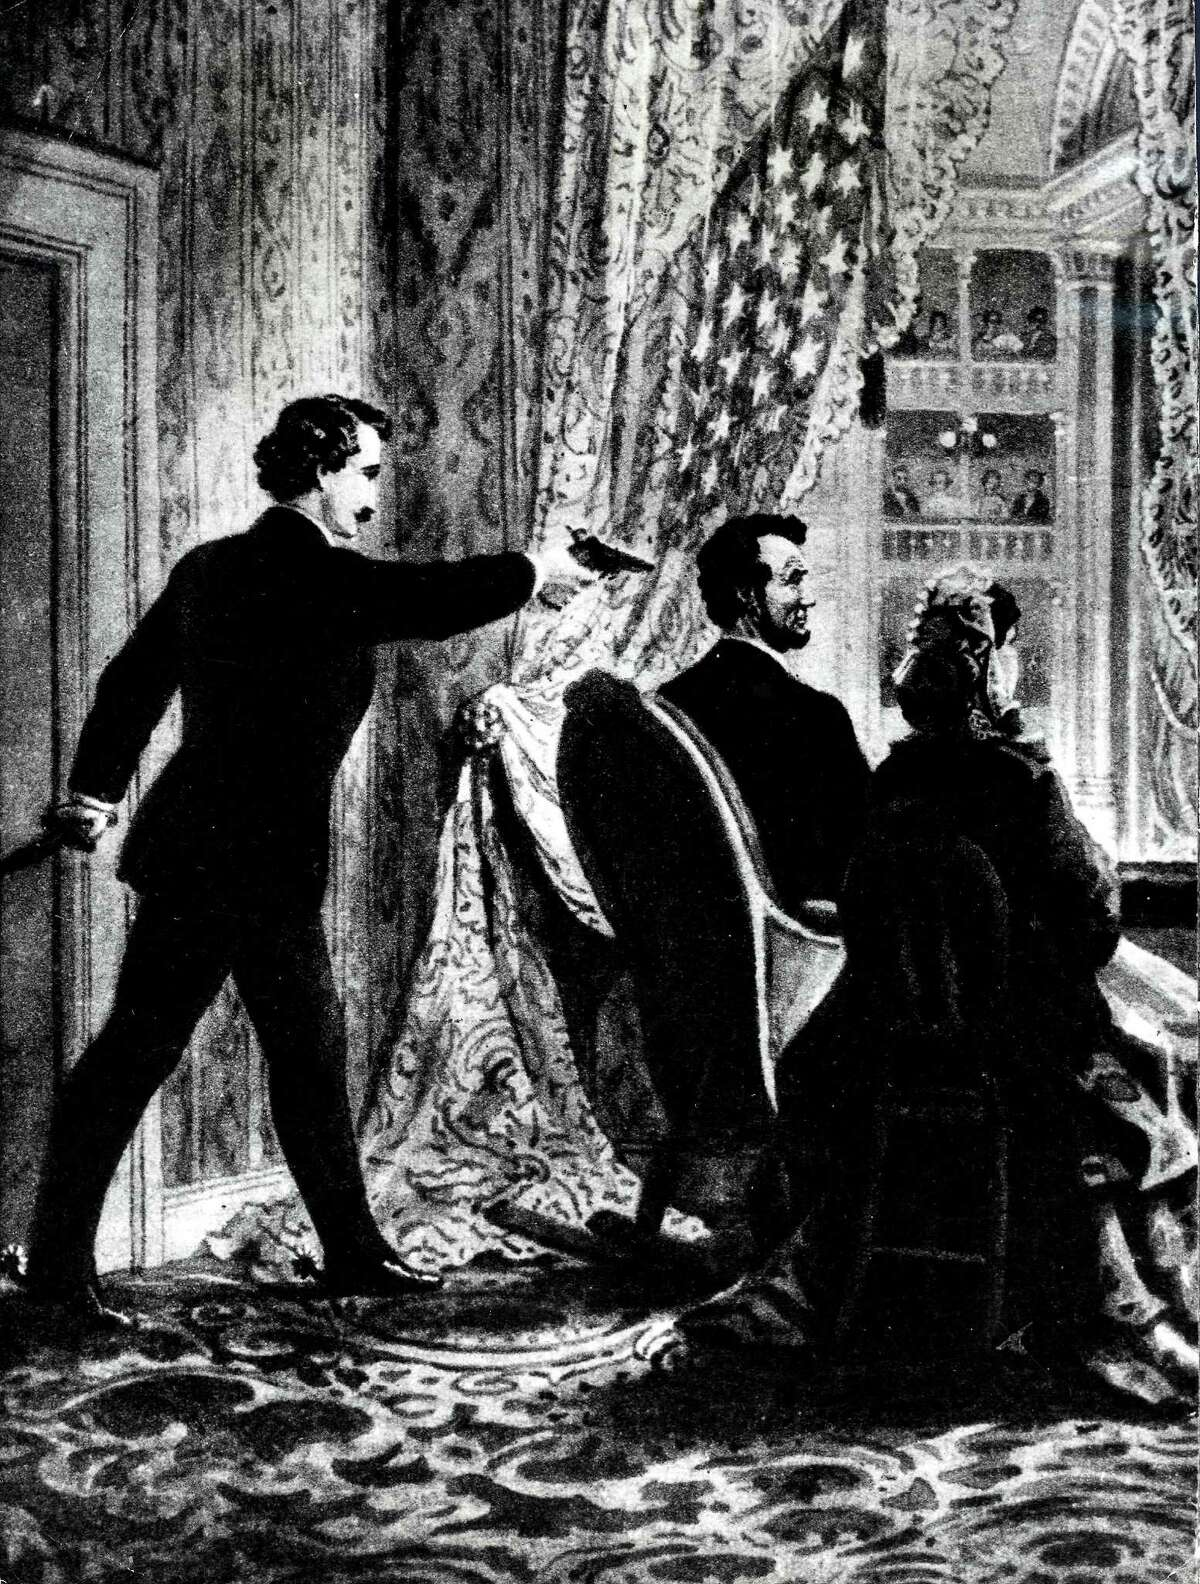 1865, An illustration, showing the assassination of US President Abraham Lincoln, (1809-1865) by John Wilkes Booth at Ford's Theater